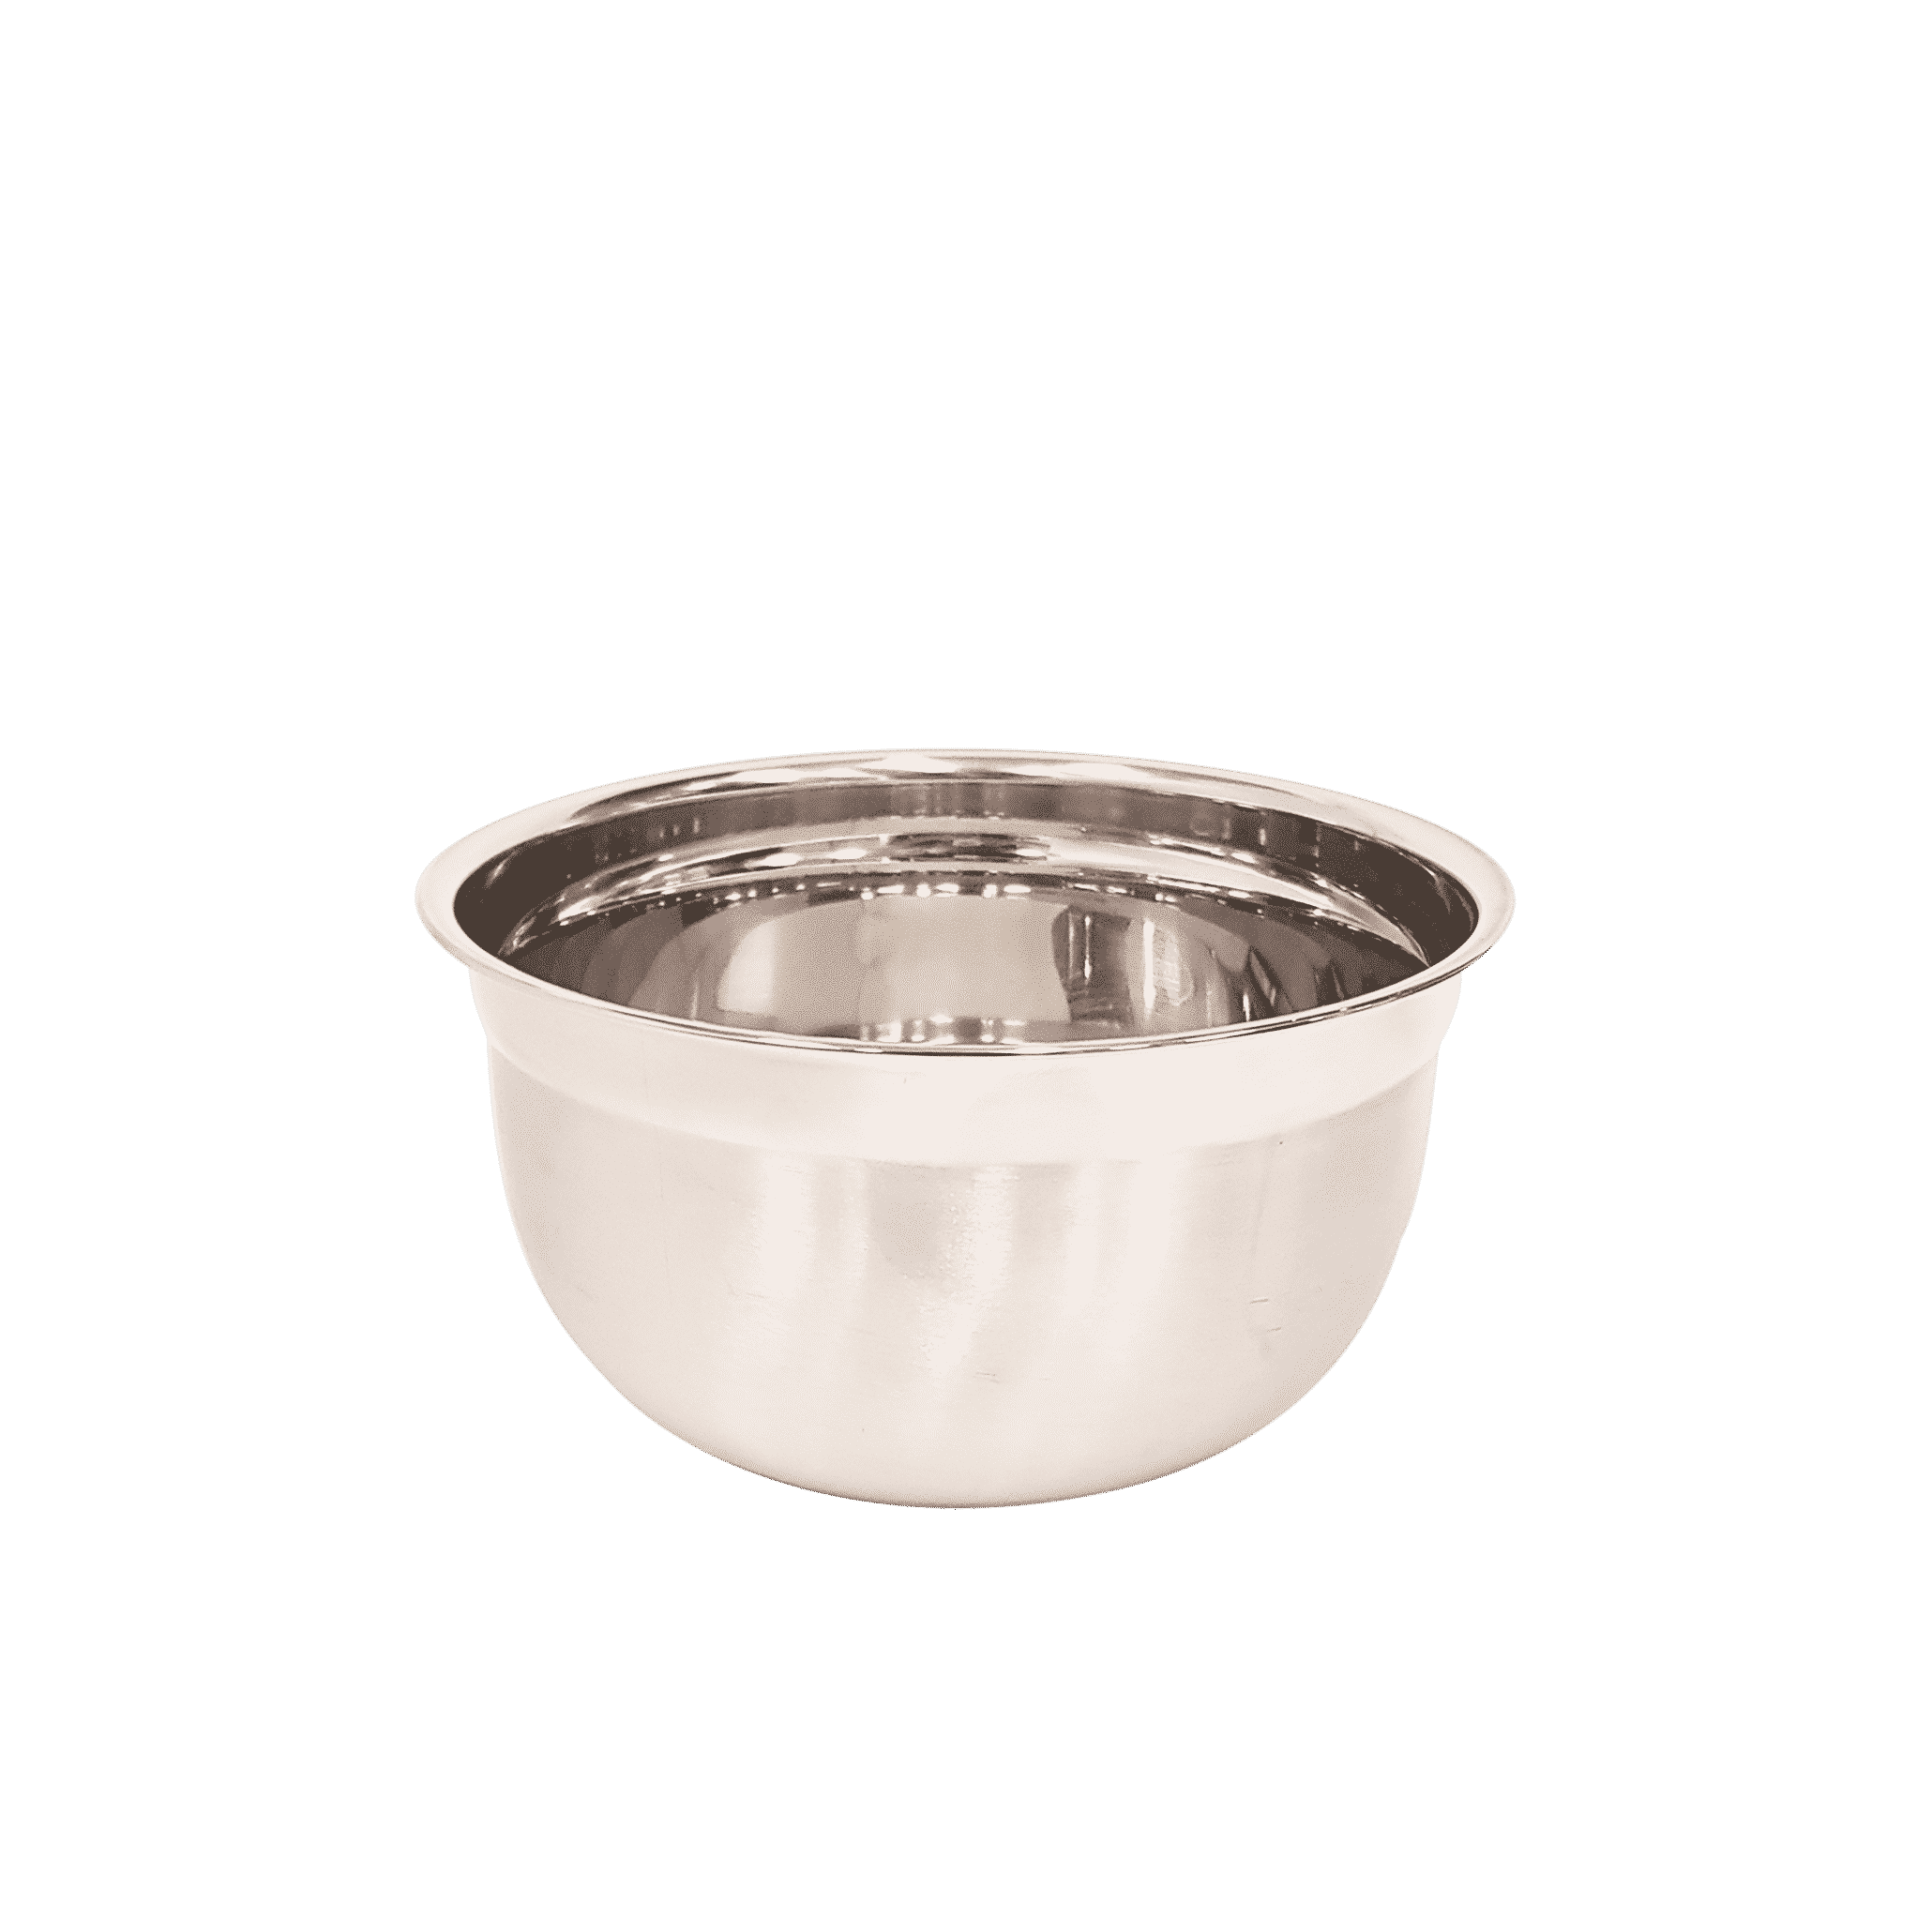 KH Stainless Steel Euro Mixing Bowl Heavy Duty 2.8lt